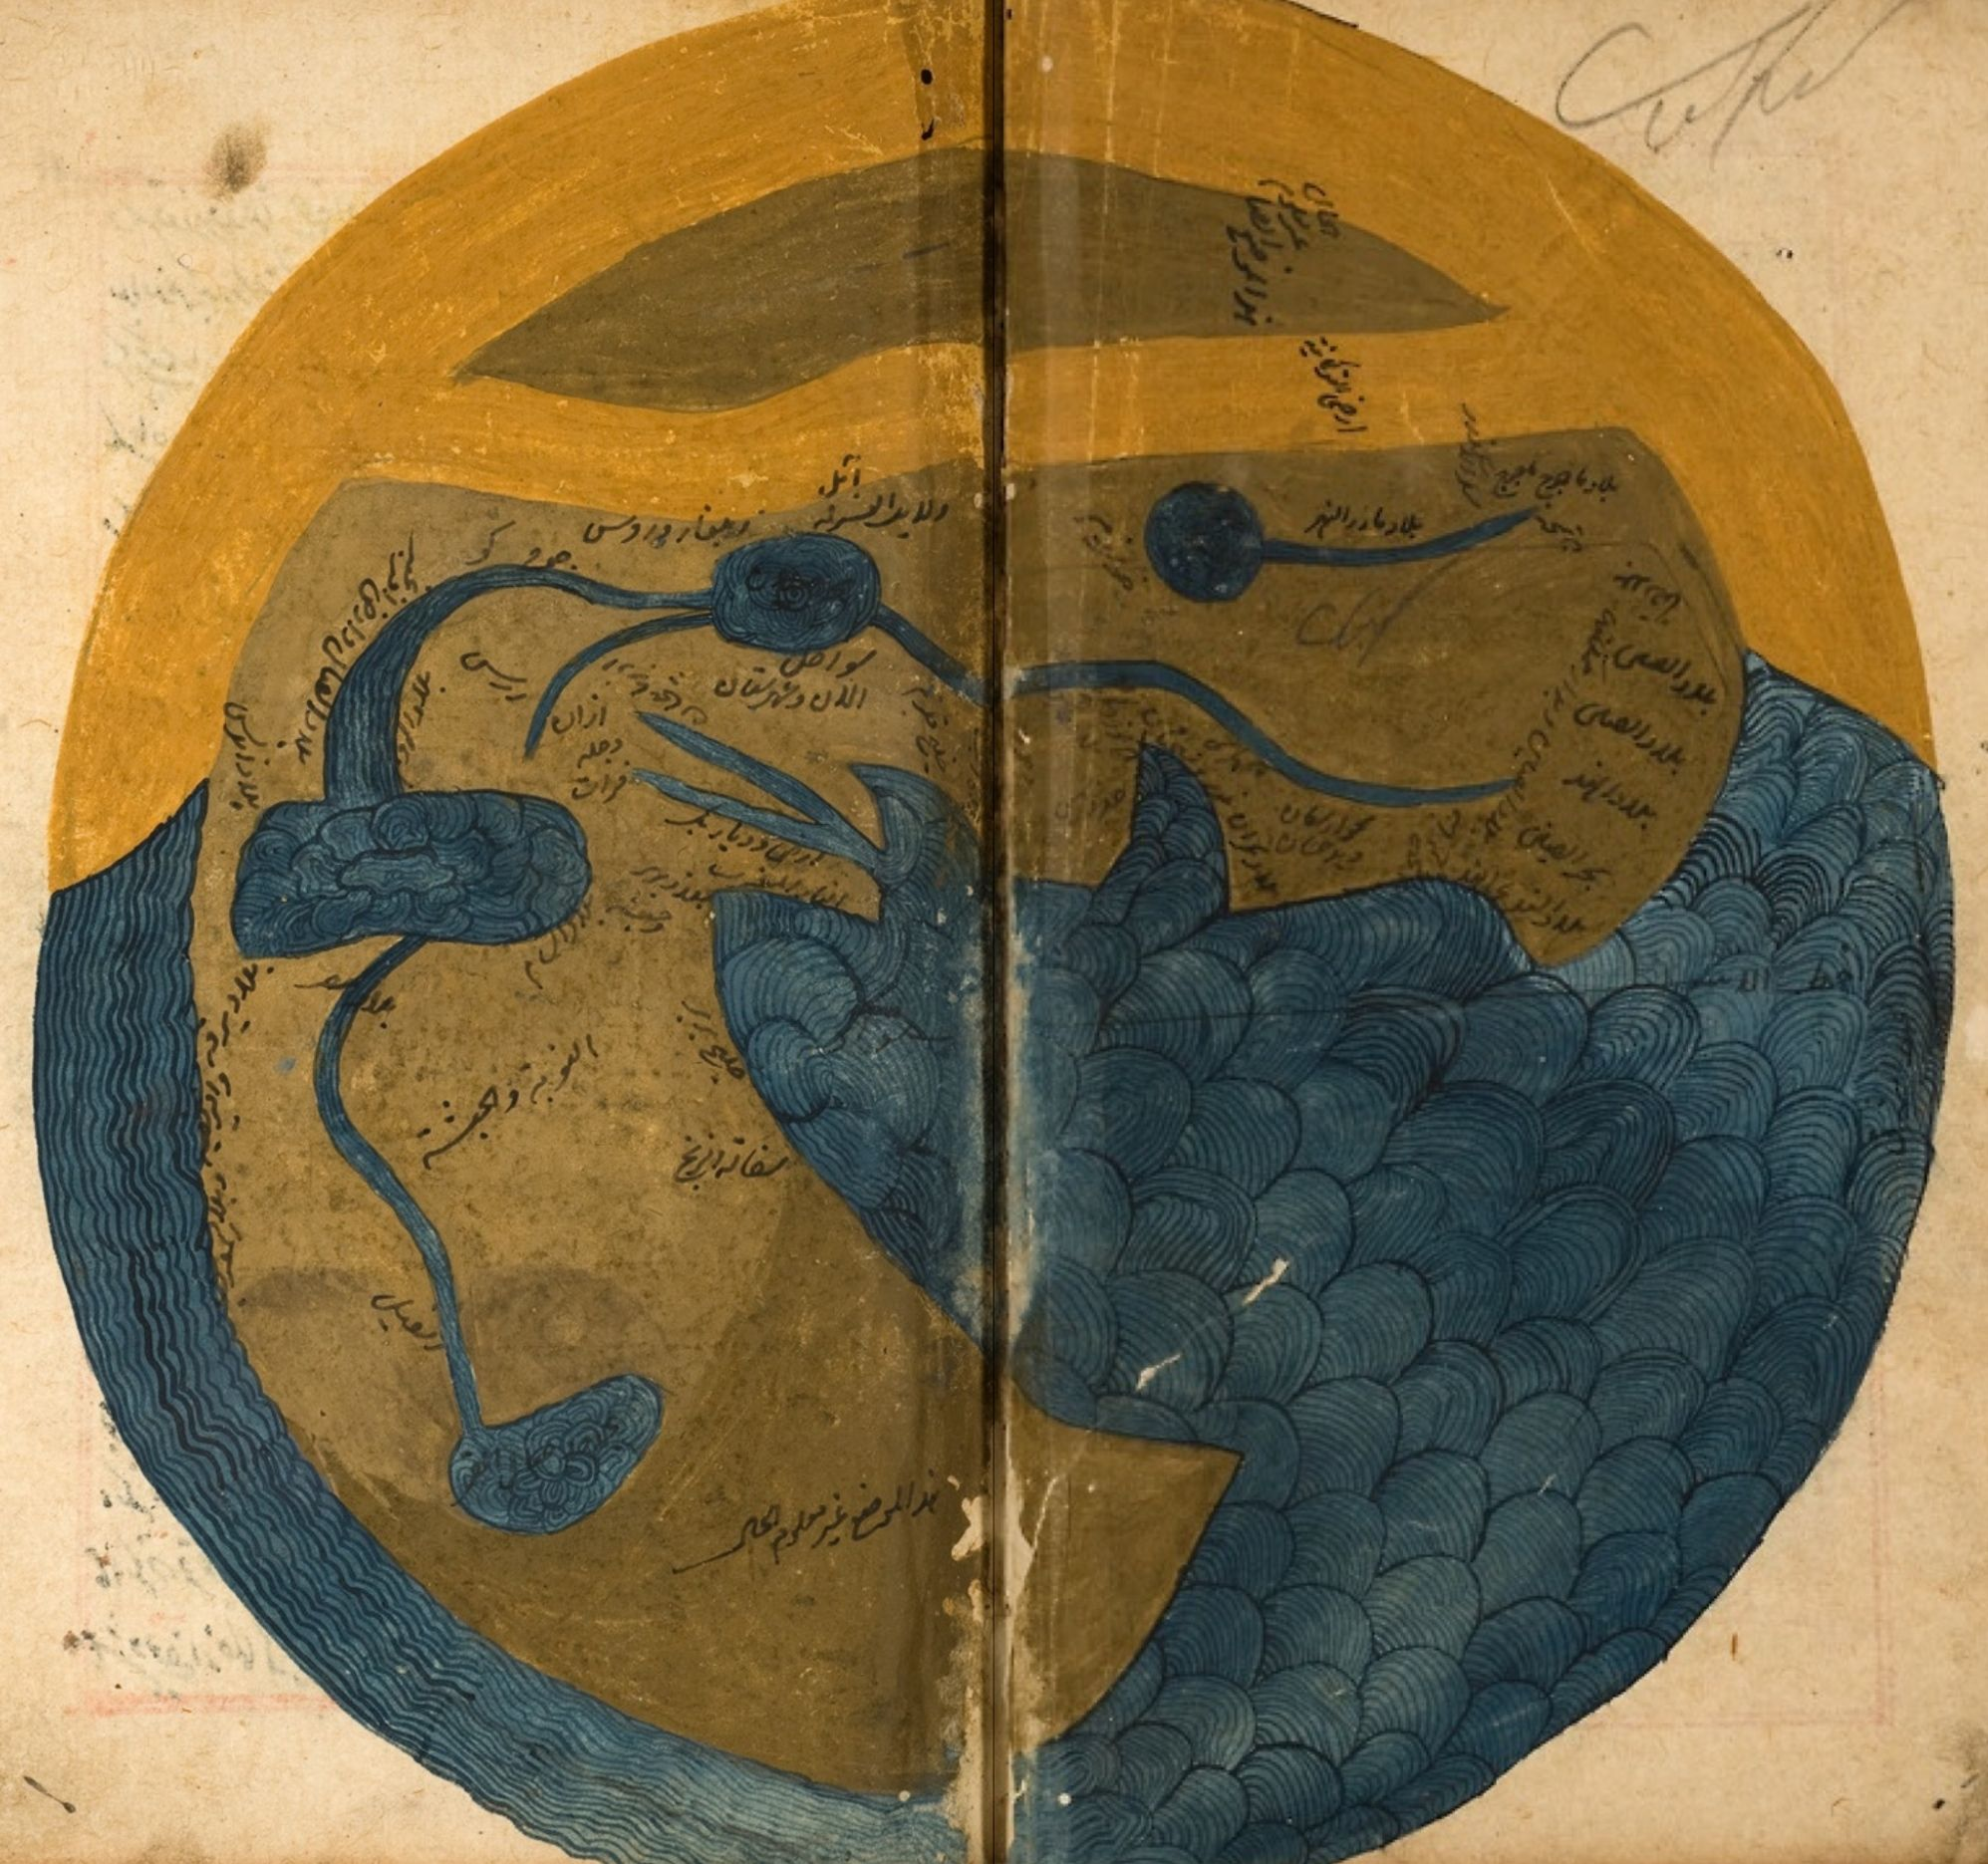 World map from marvels of things created and miraculous aspects world map from marvels of things created and miraculous aspects of things existing gumiabroncs Choice Image